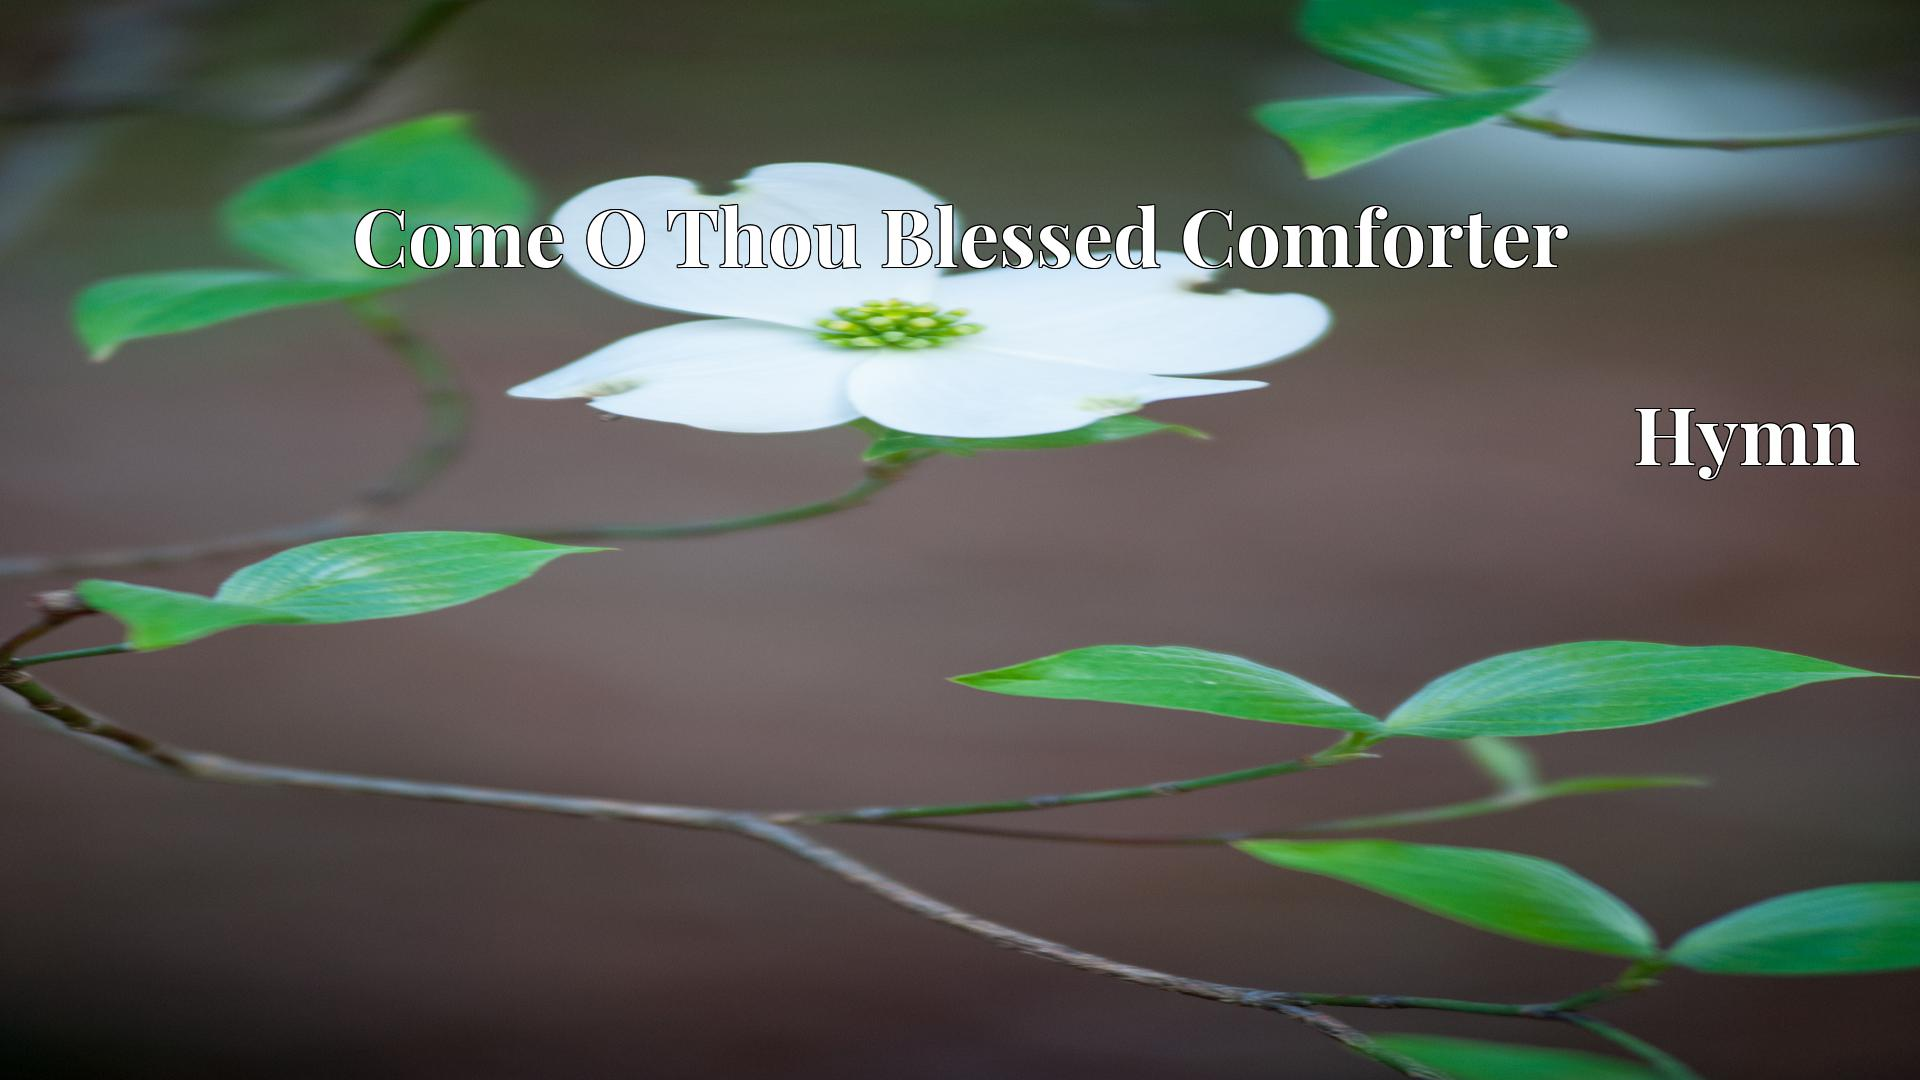 Come O Thou Blessed Comforter - Hymn